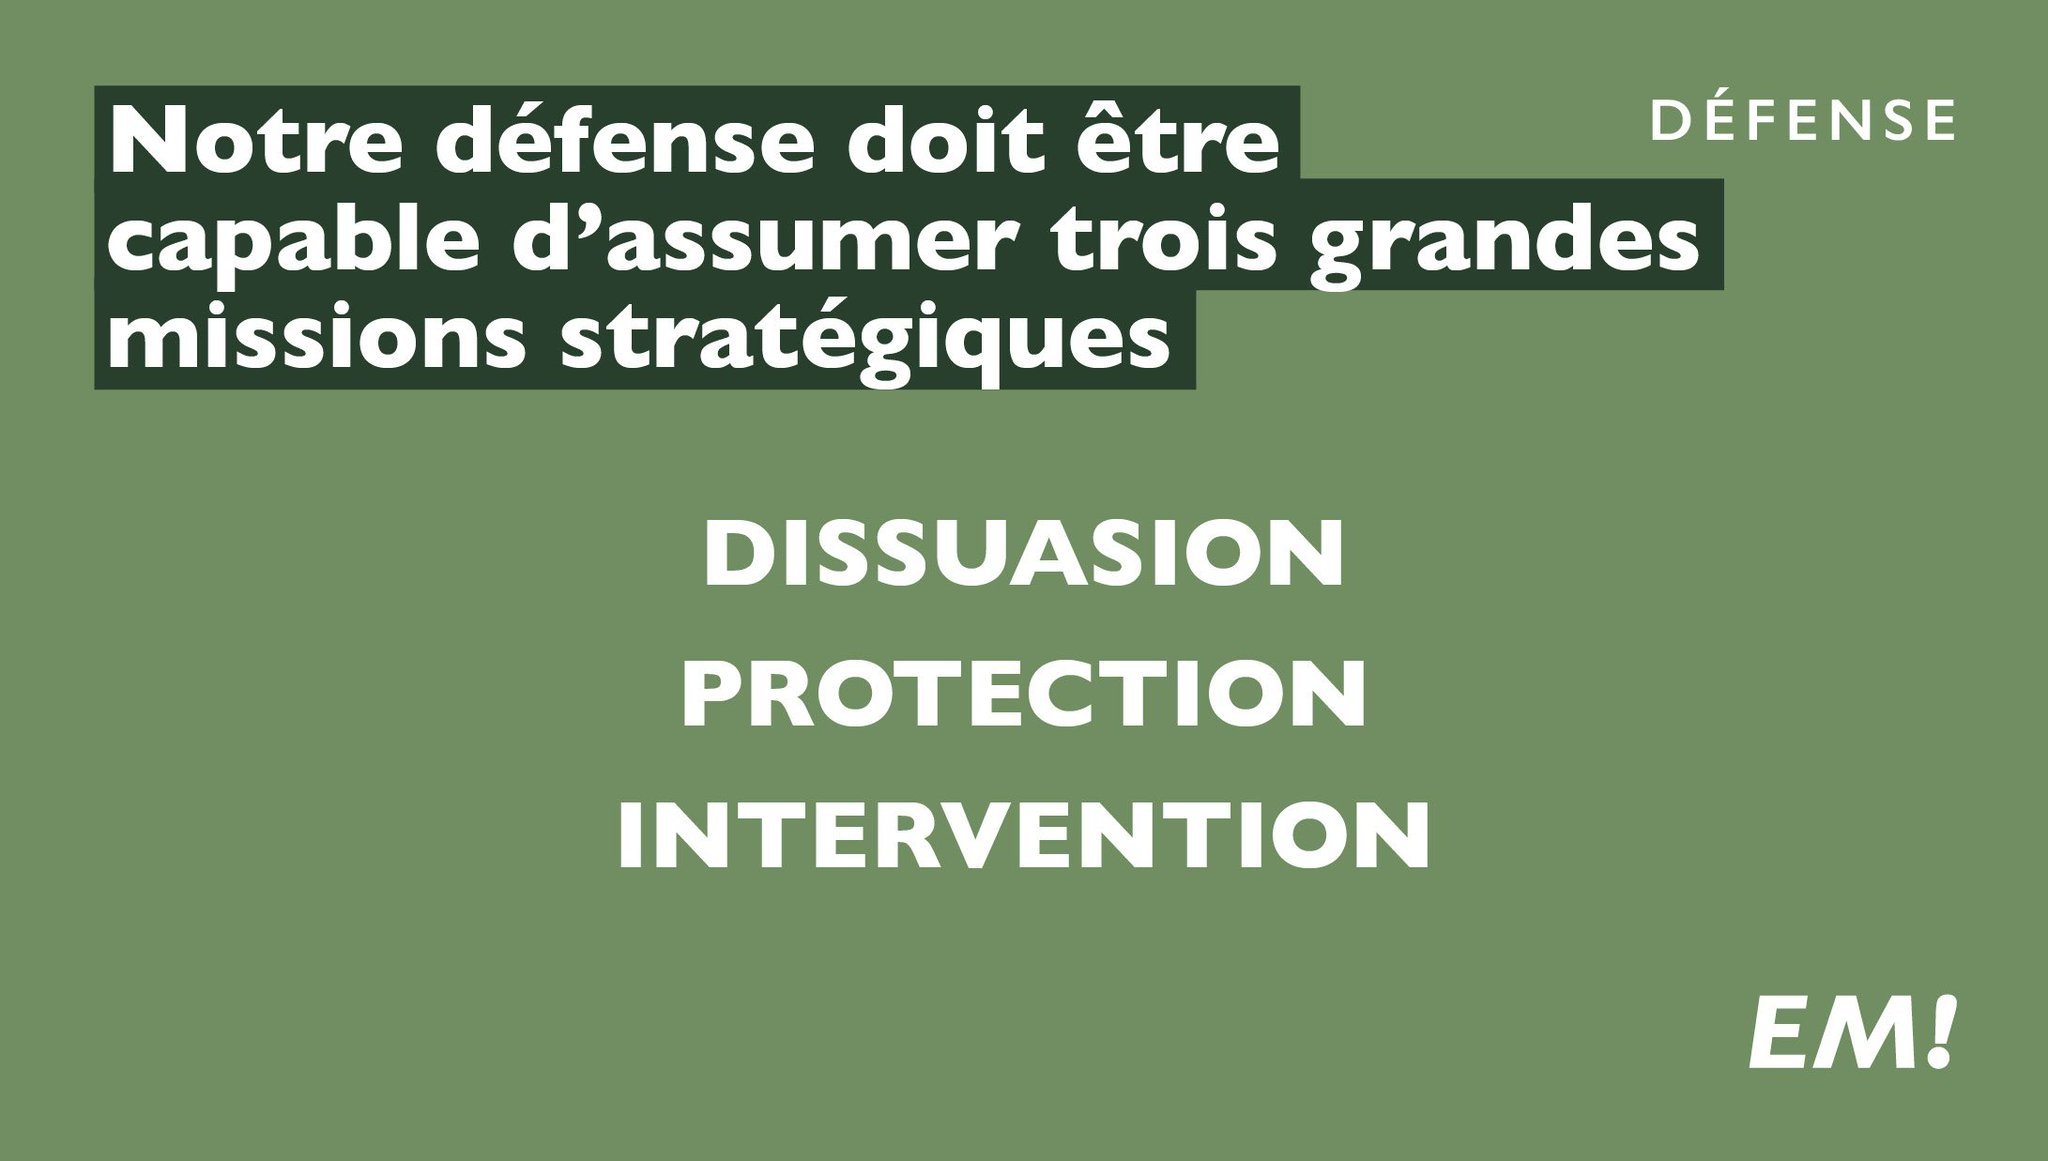 Dissuasion, protection, intervention. #MacronDéfense https://t.co/aHUJro0Ysk